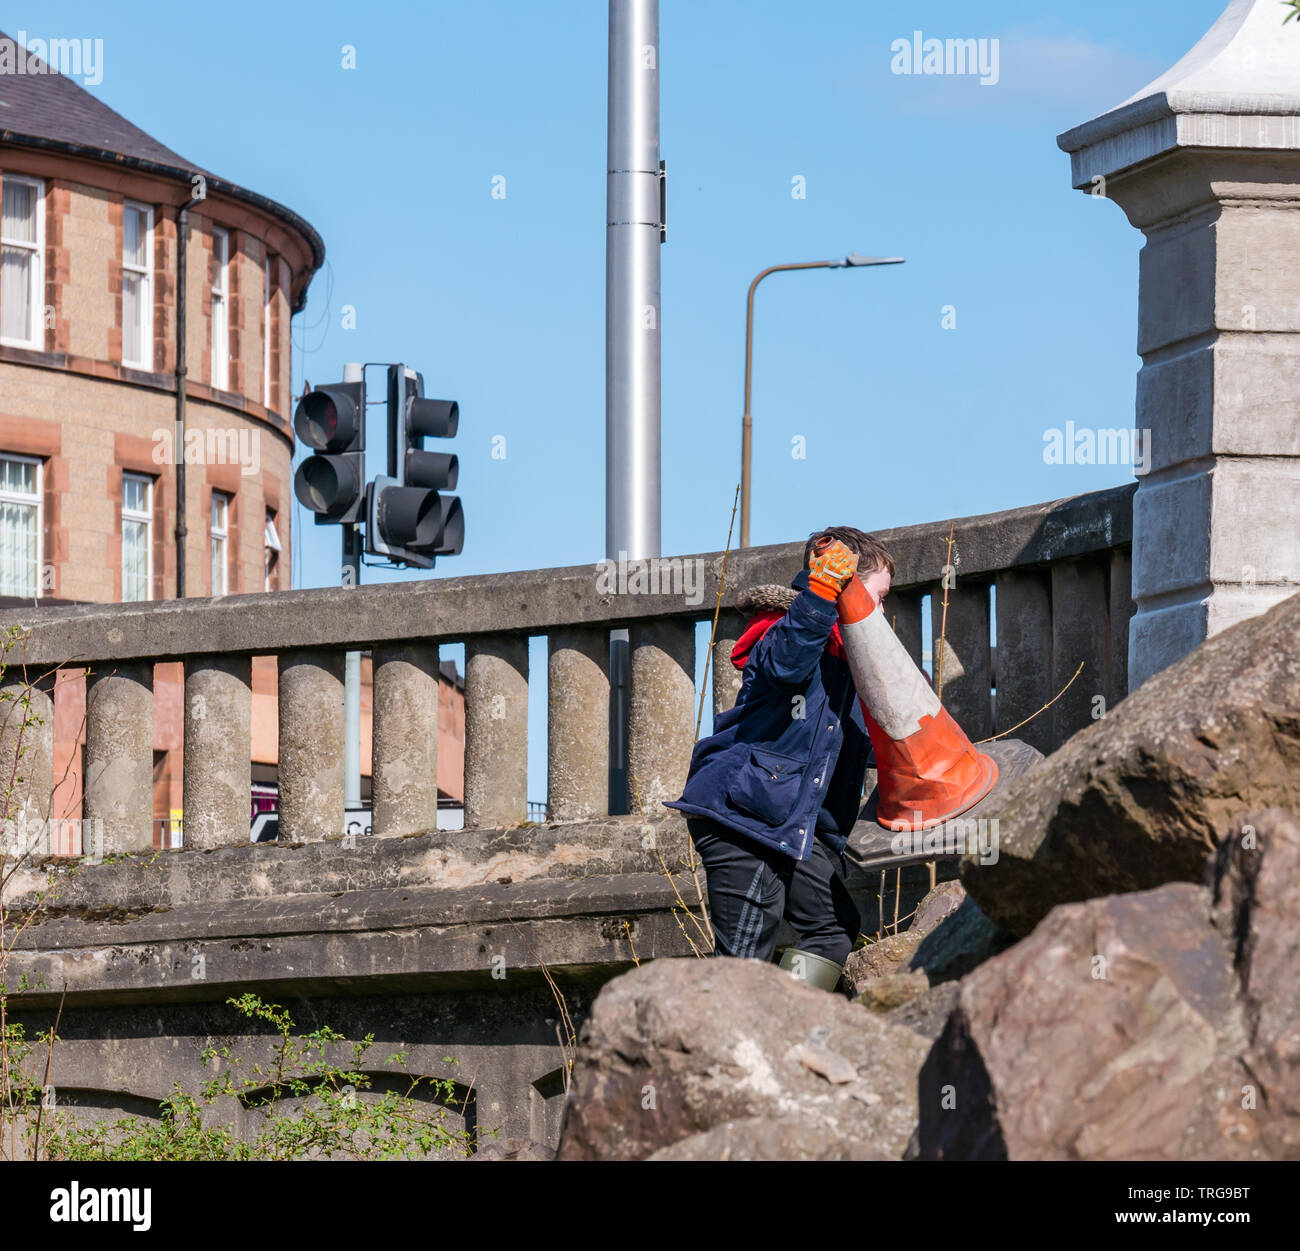 Volunteer at annual Spring clean on bank of Water of Leith, Edinburgh, Scotland, UK. A young boy retrieves a traffic cone from the riverbank - Stock Image